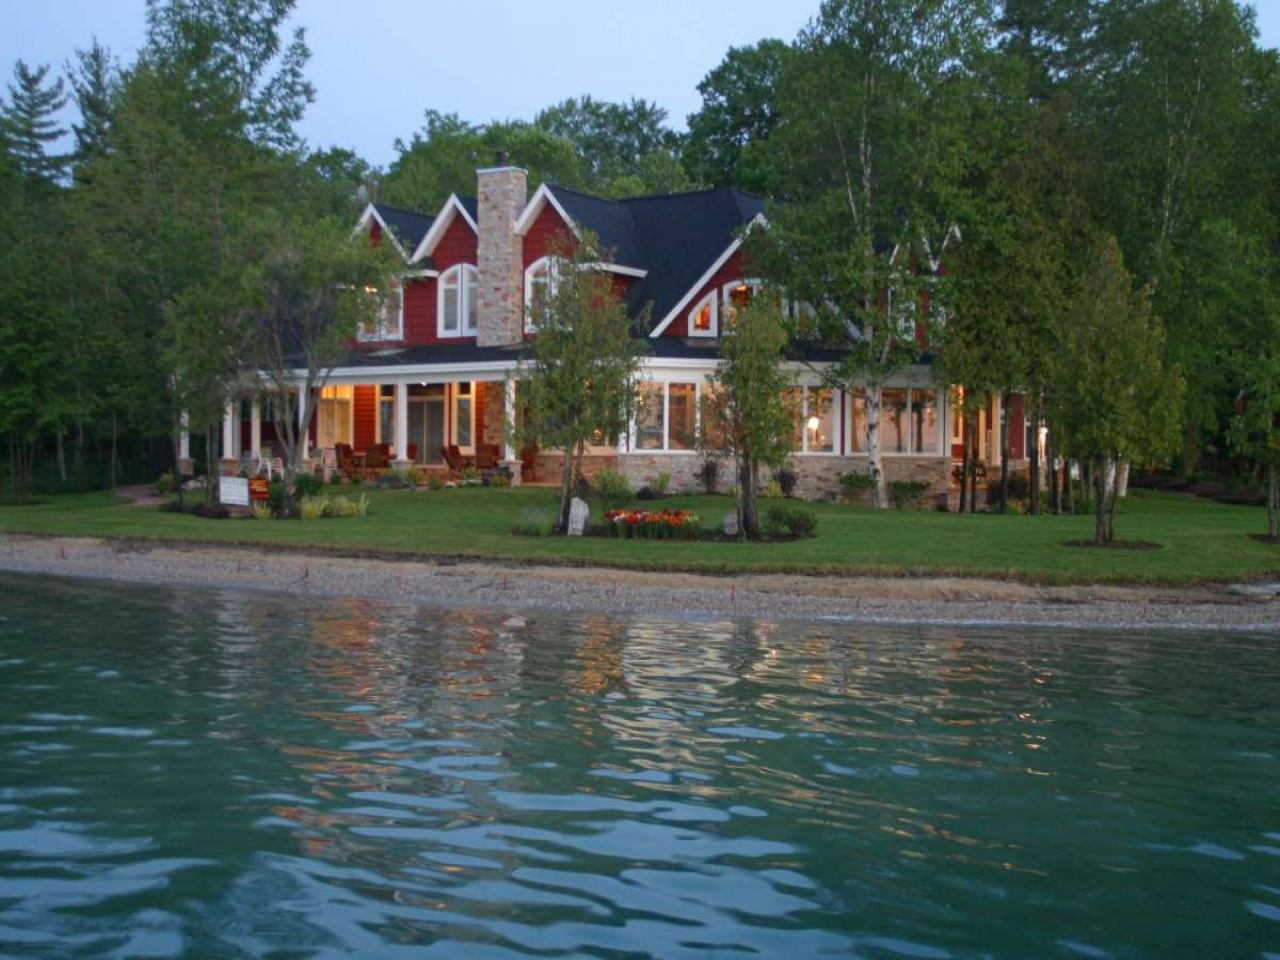 madonna house torch lake torch lake michigan homes lake